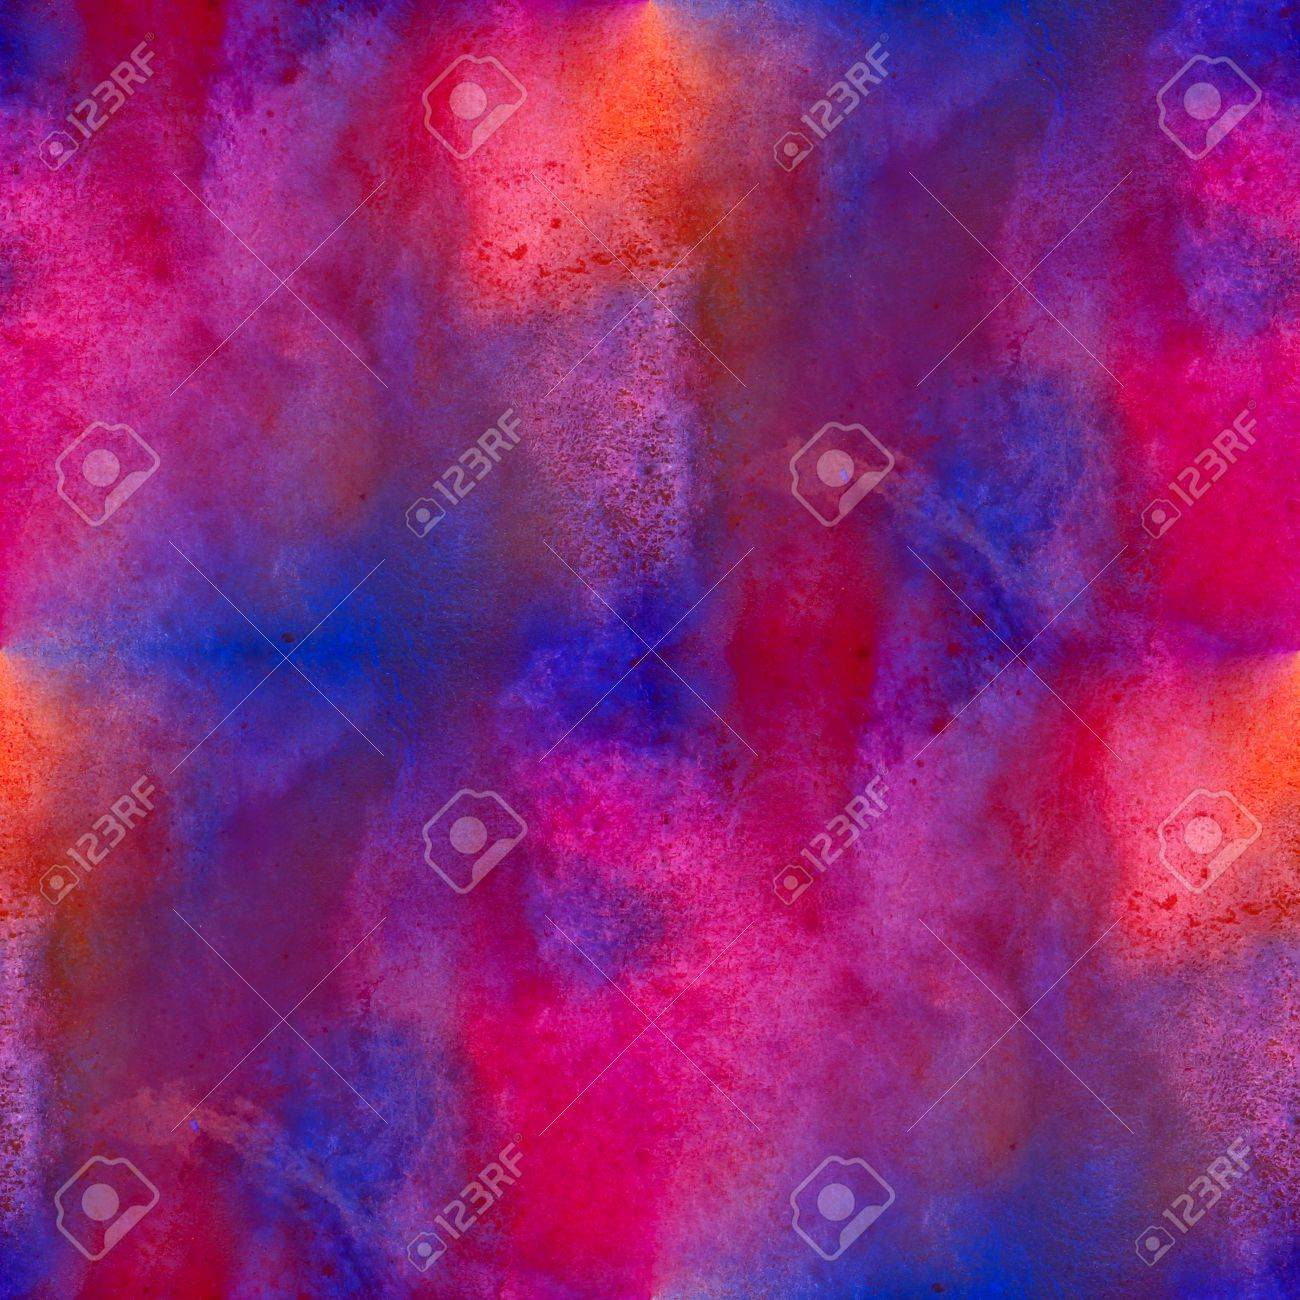 seamless red purple background watercolor water abstract art stock po 16867522